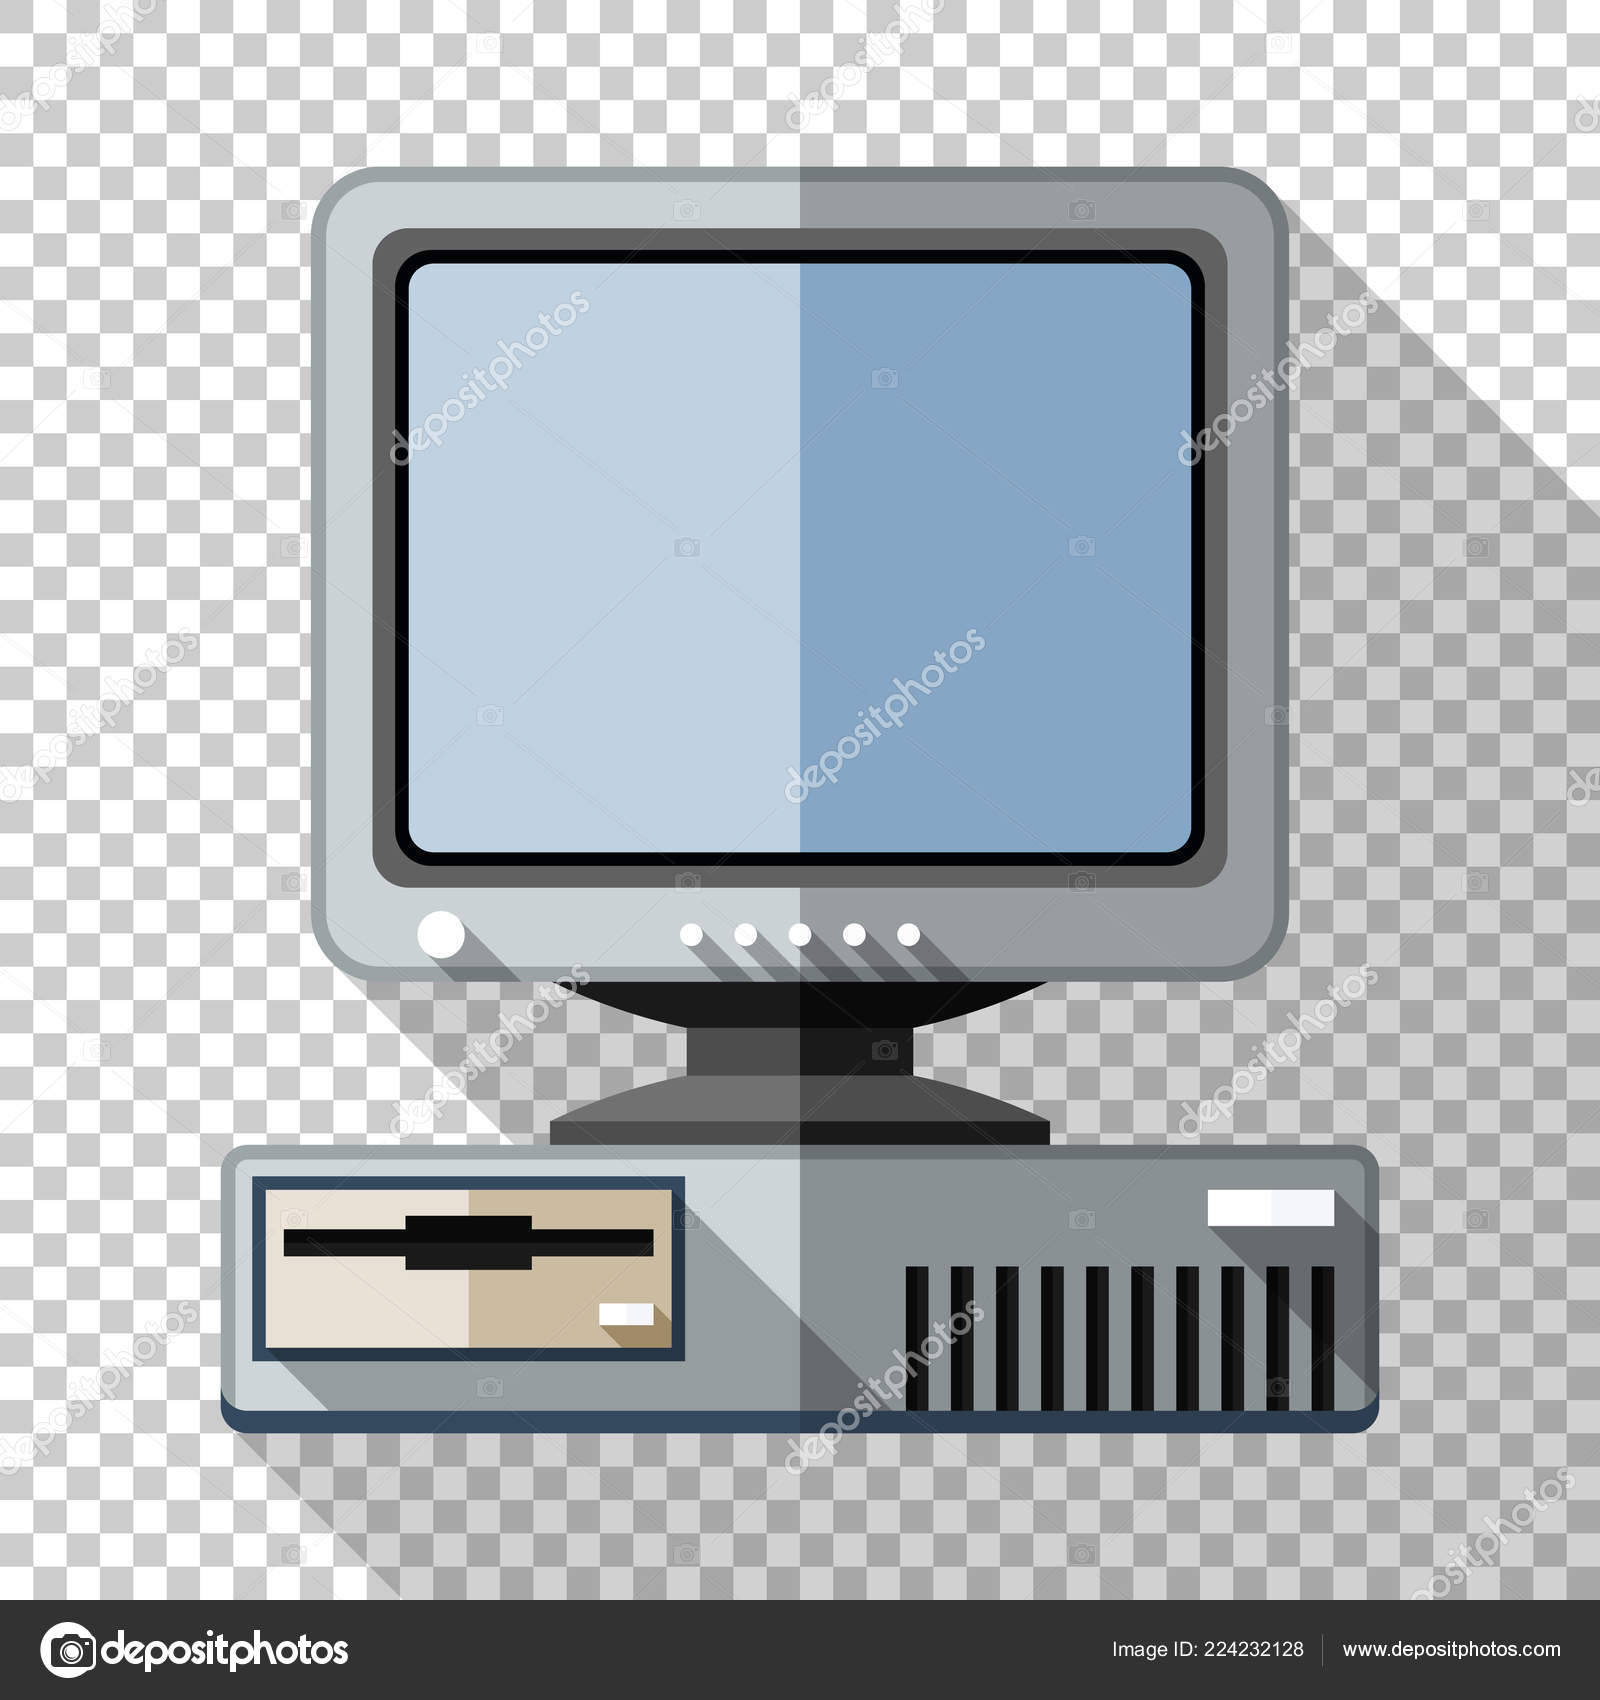 Retro computer with CRT monitor icon in flat style with long shadow